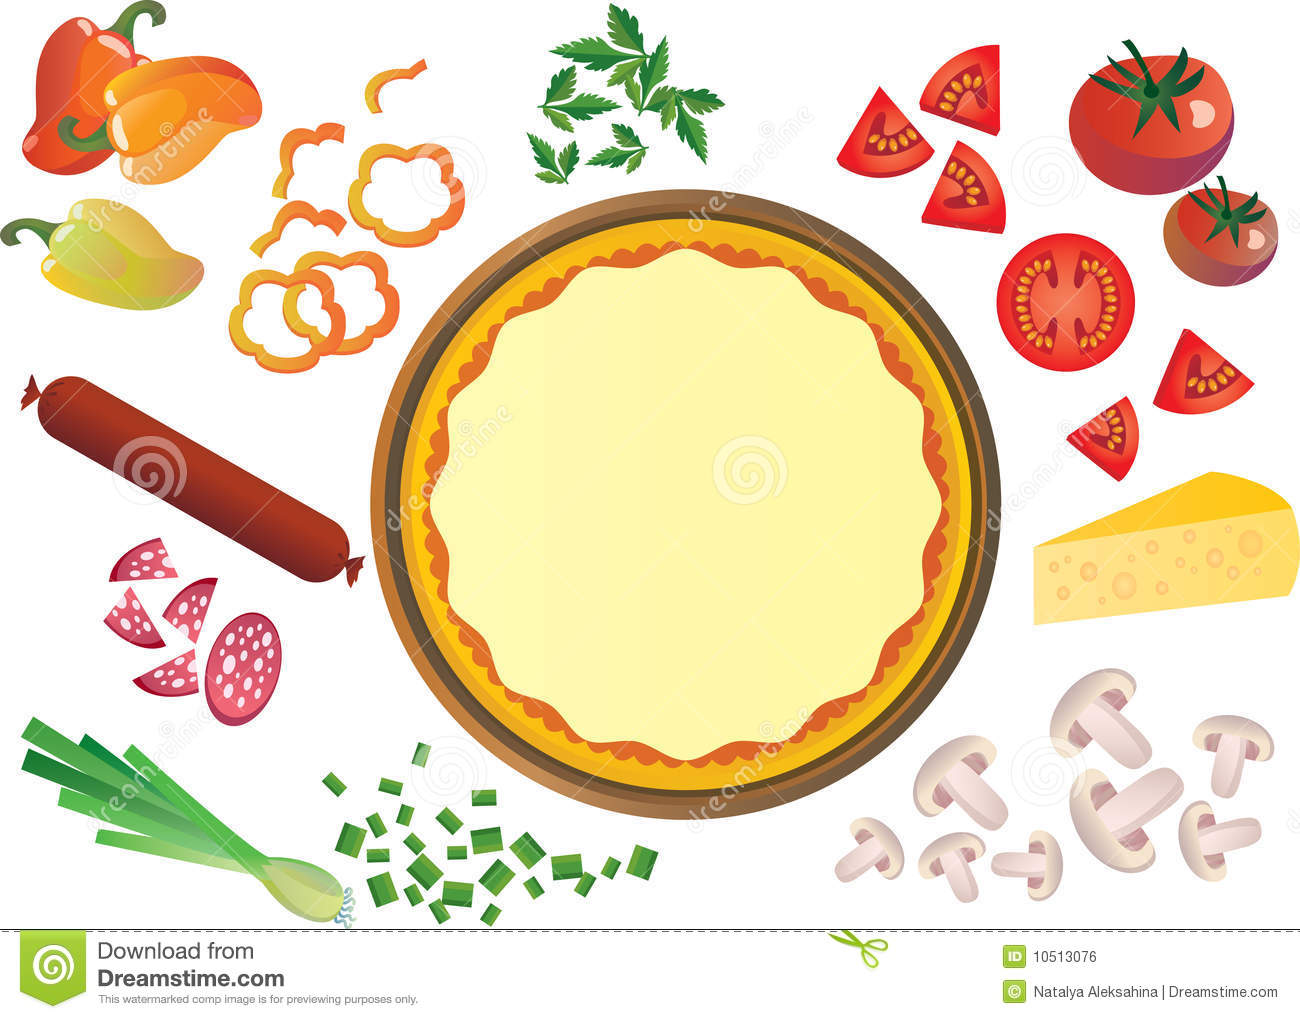 Pizza clipart pizza crust Ingredients Clipart cliparts Pizza Ingredients